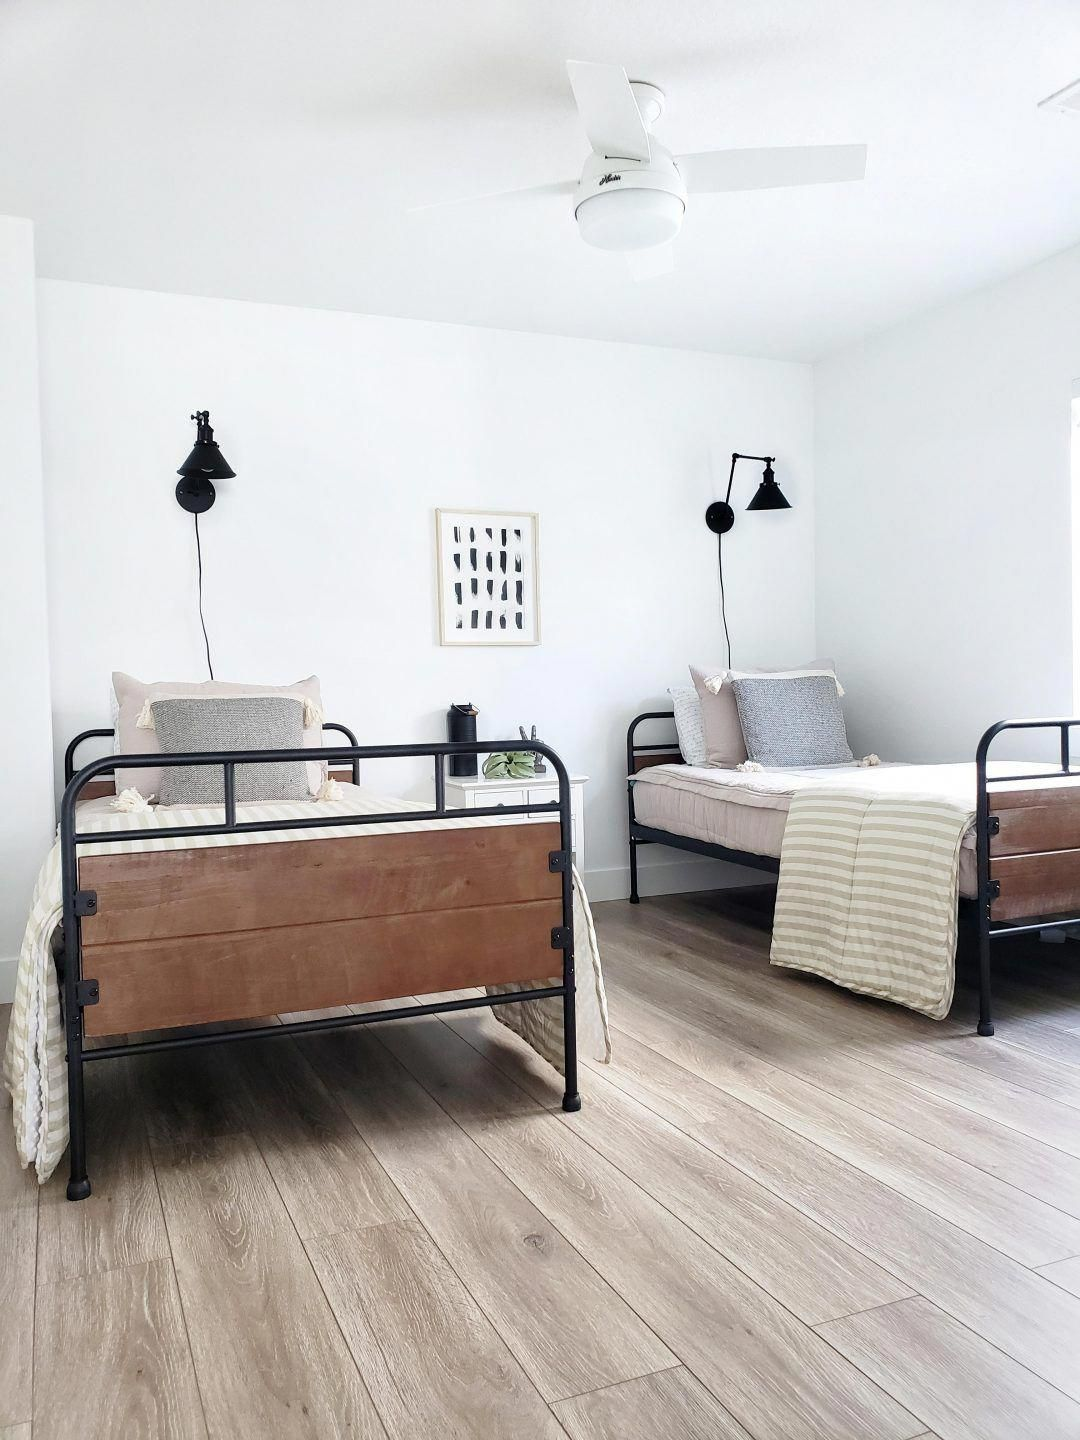 @whitelanedecor #whitelanedecor Beddy's Bed, twin trundle beds, black swing arm wall sconce, neutral bedroom, basement bedroom, black metal twin beds, side by side black metal twin beds, zipper bedding, Beddy's Oh So Boho. Basement Ideas. #whitebedroom #beddysbedding @whitelanedecor #whitelanedecor Beddy's Bed, twin trundle beds, black swing arm wall sconce, neutral bedroom, basement bedroom, black metal twin beds, side by side black metal twin beds, zipper bedding, Beddy's Oh So Boho. Basement #beddysbedding